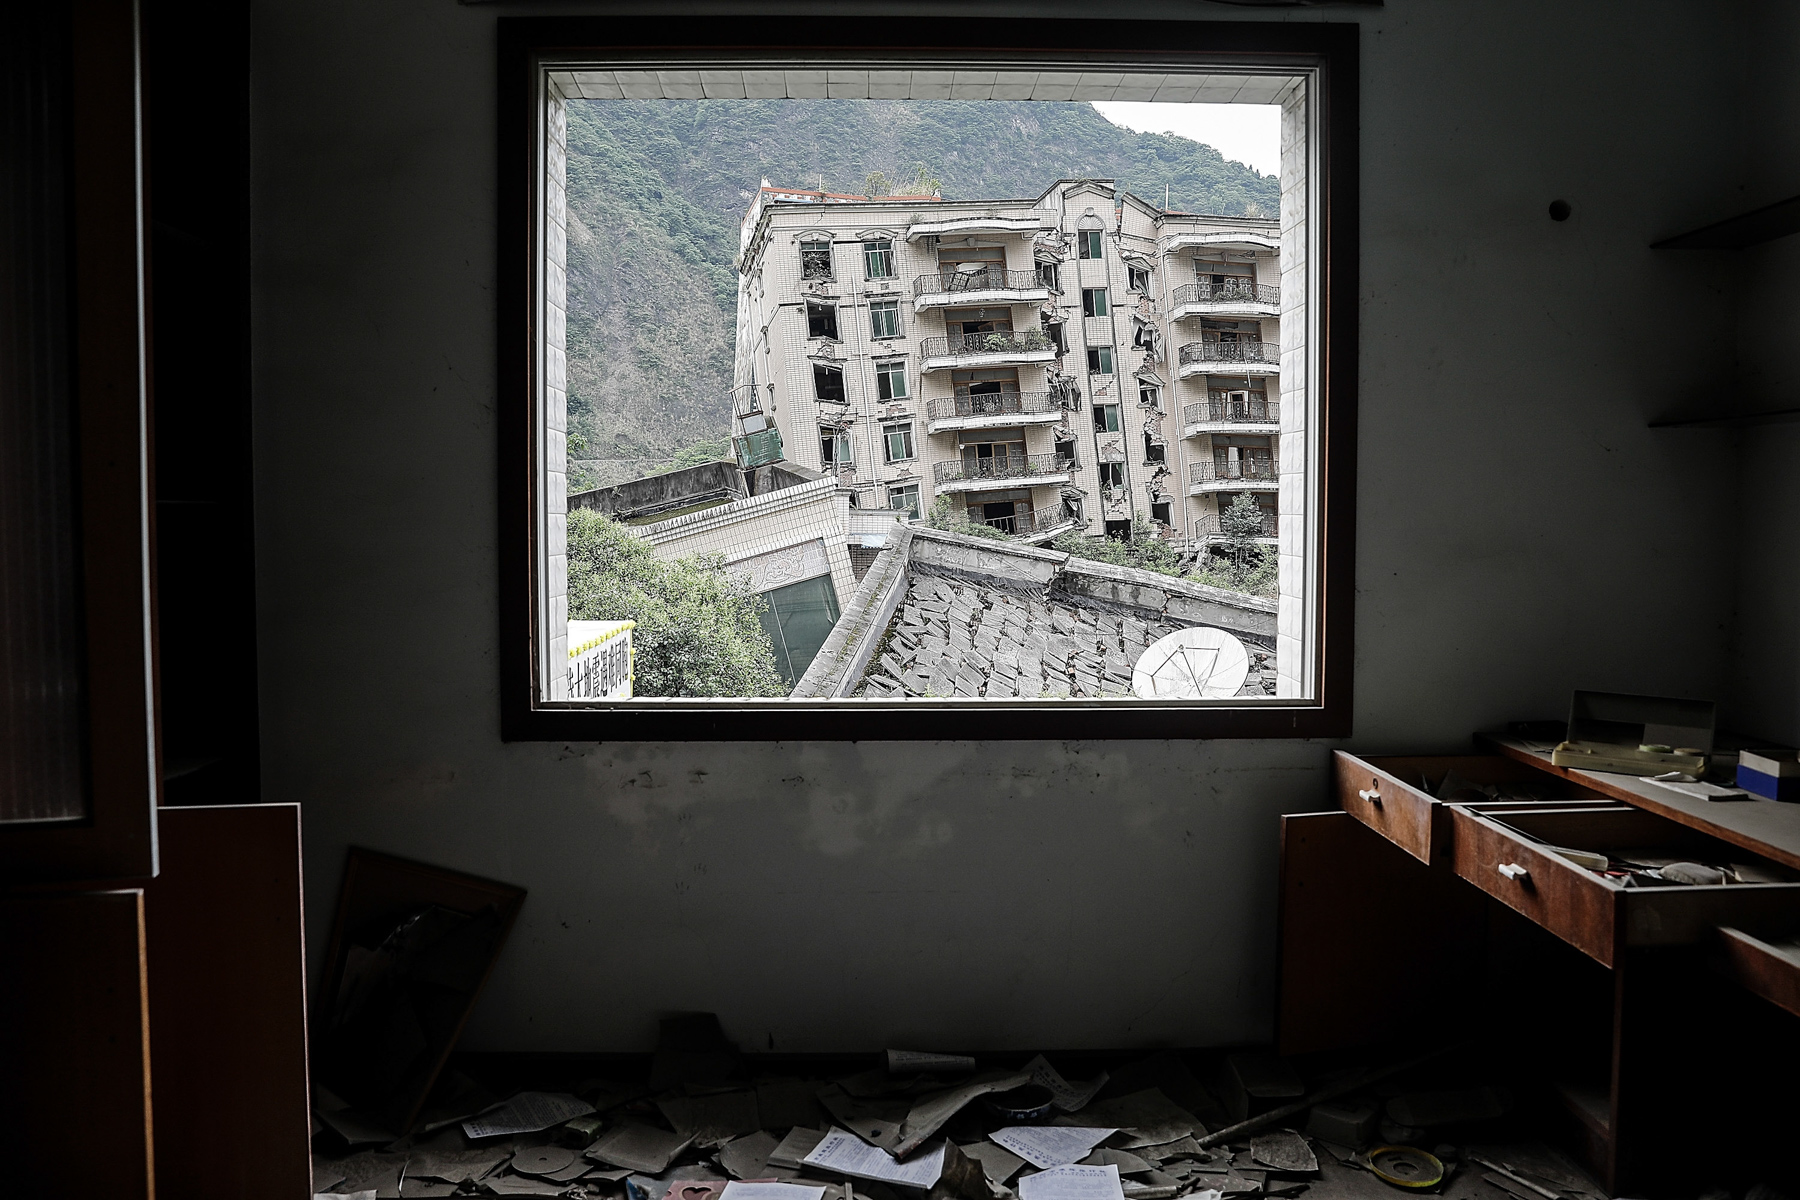 Buildings that were destroyed during the 2008 Sichuan Earthquake are seen from the window of another ruined building, in Beichuan Qiang Autonomous County, Sichuan province, May 11. May 12th marked the 10-year anniversary of the catastrophic Sichuan Earthquake that killed more than 15,000 people. (Wang He/Getty Images)